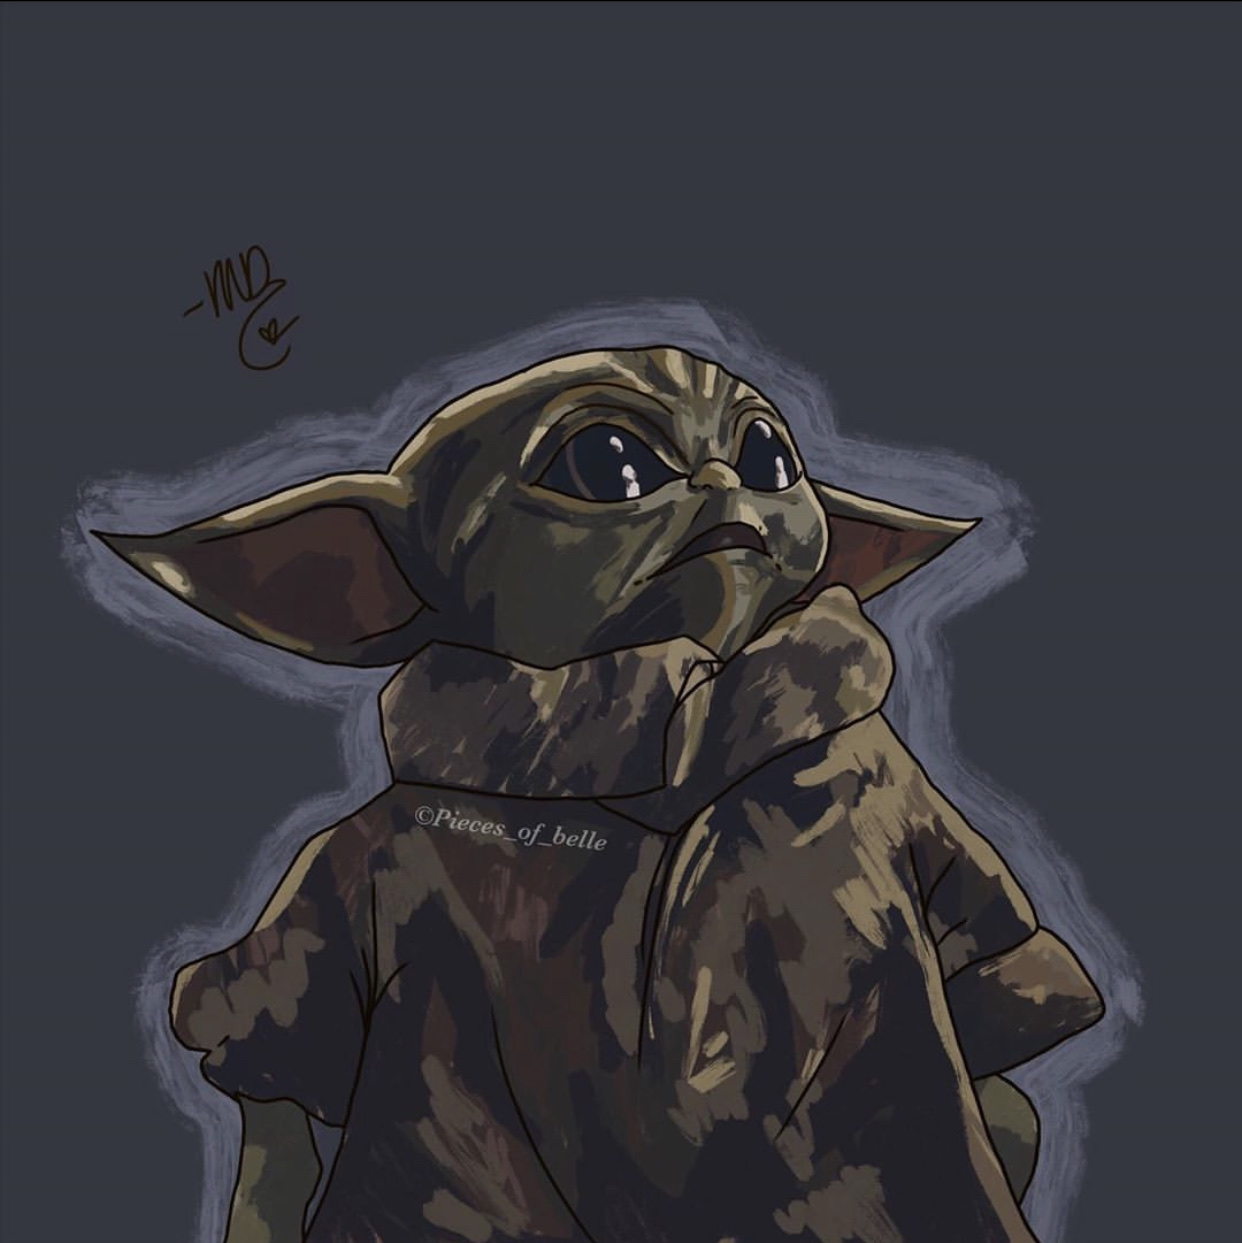 My 14 year old daughter drew baby Yoda. Thought you might like it.